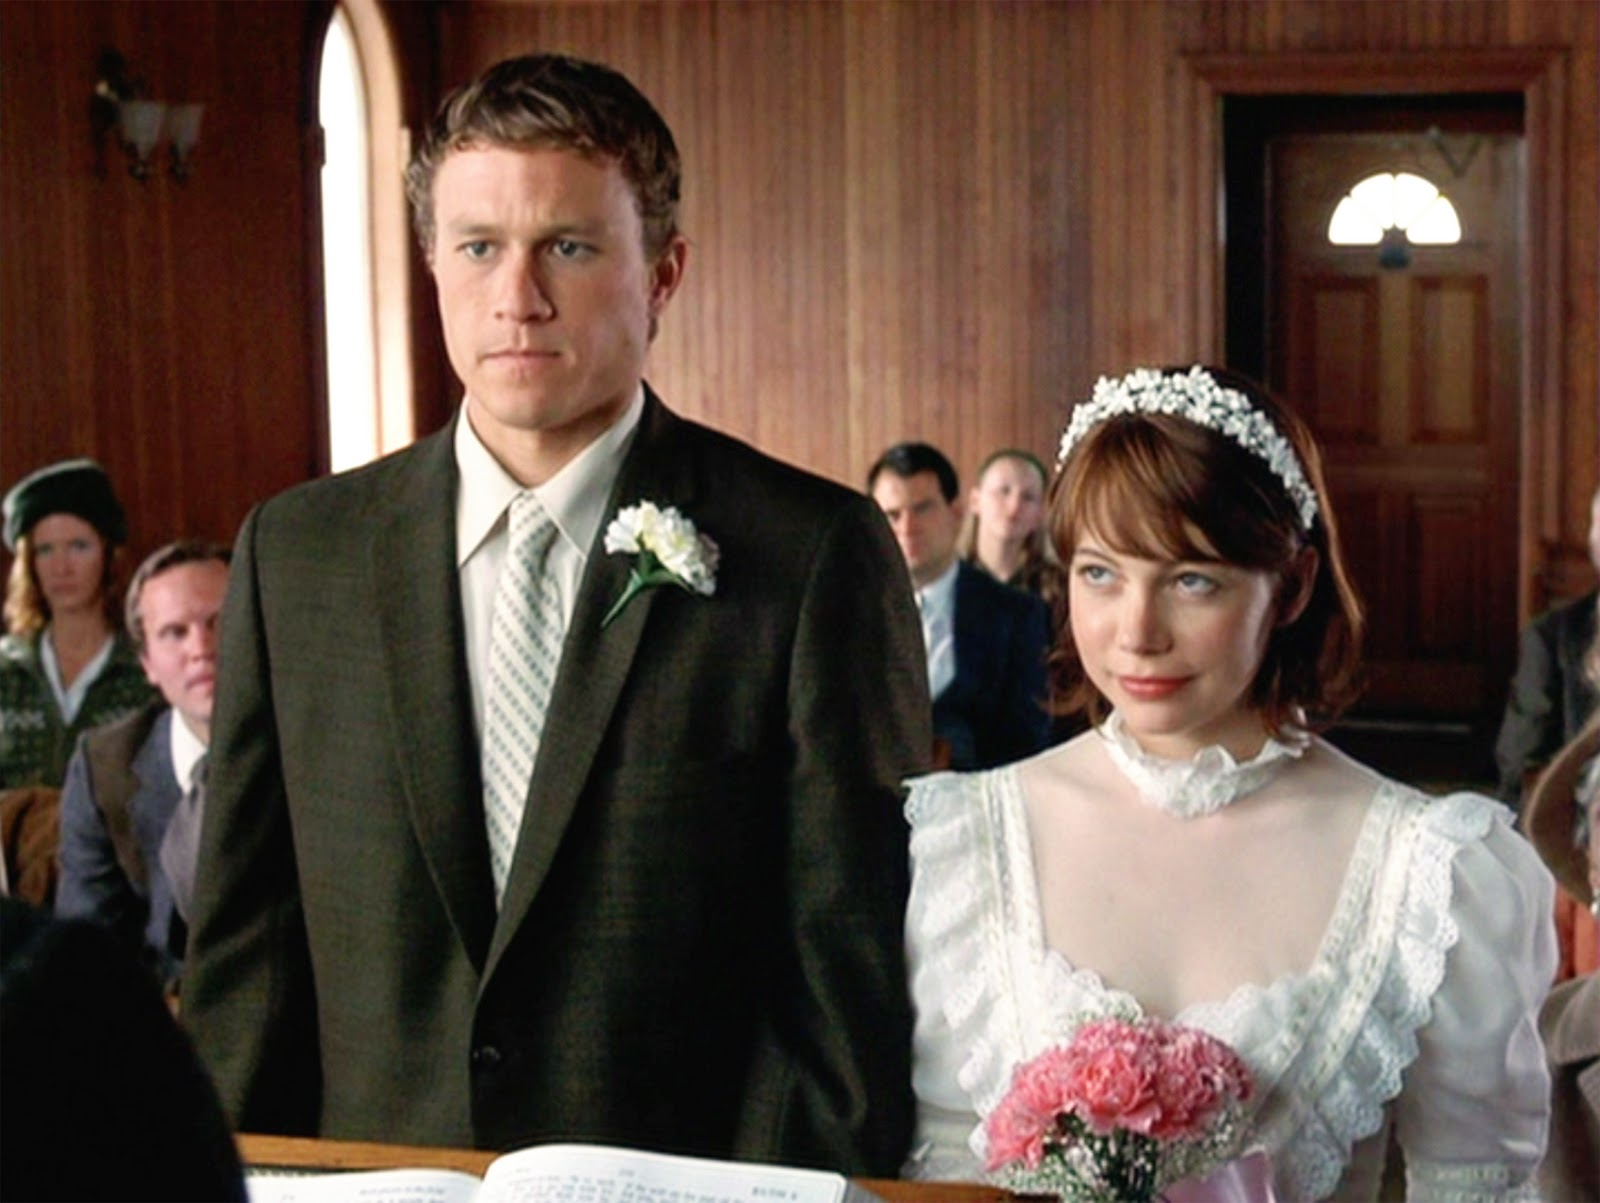 Another shot of Ennis and Alma's Wedding by jhwink on DeviantArt